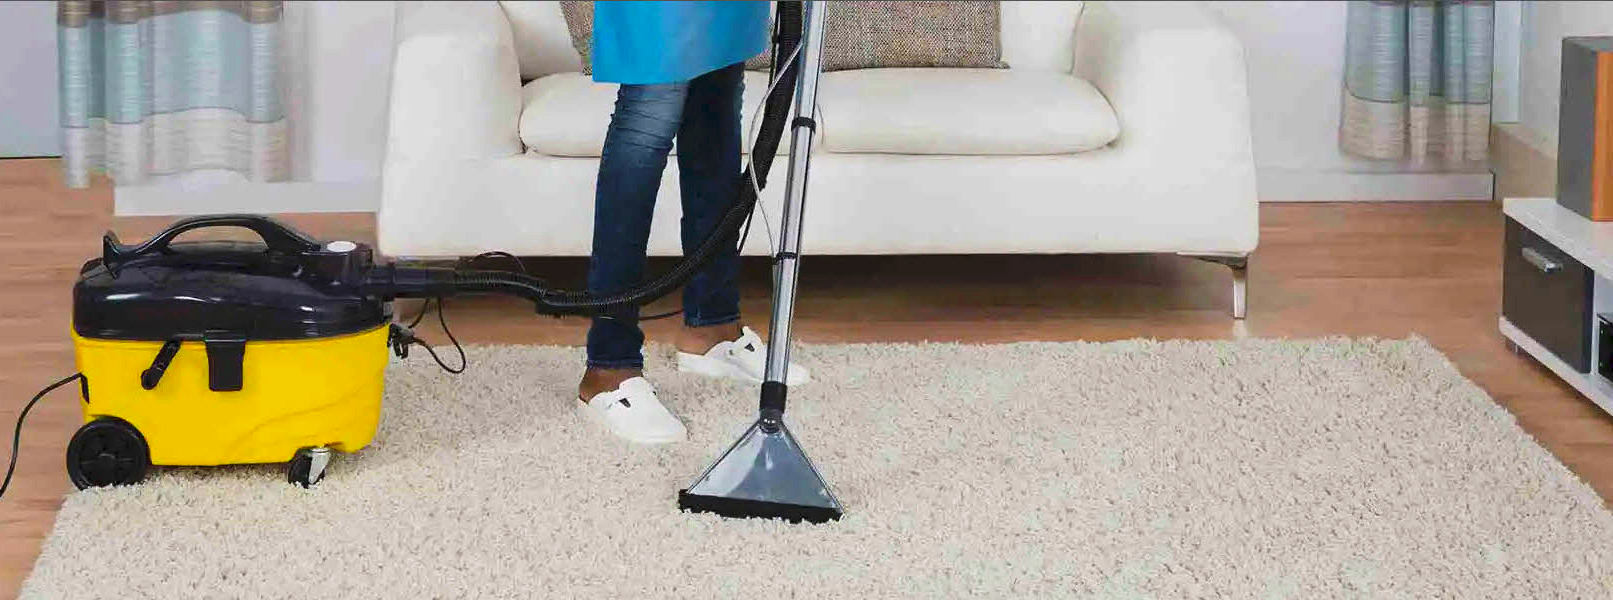 how to start a cleaning business in edmonton